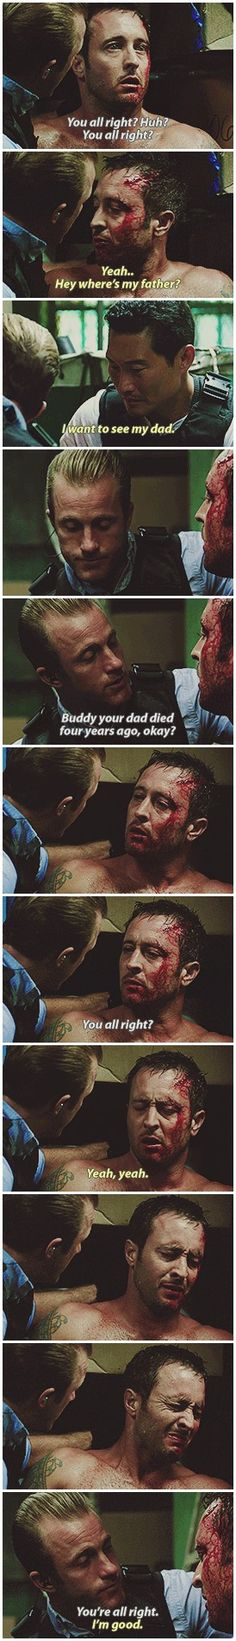 - my heart is broken -alex killed this -they all did -poor darling steve -you're tucked under danny's wing though-#which is a safe place to be -it'll be all right hon 5.07  ♥♥♥